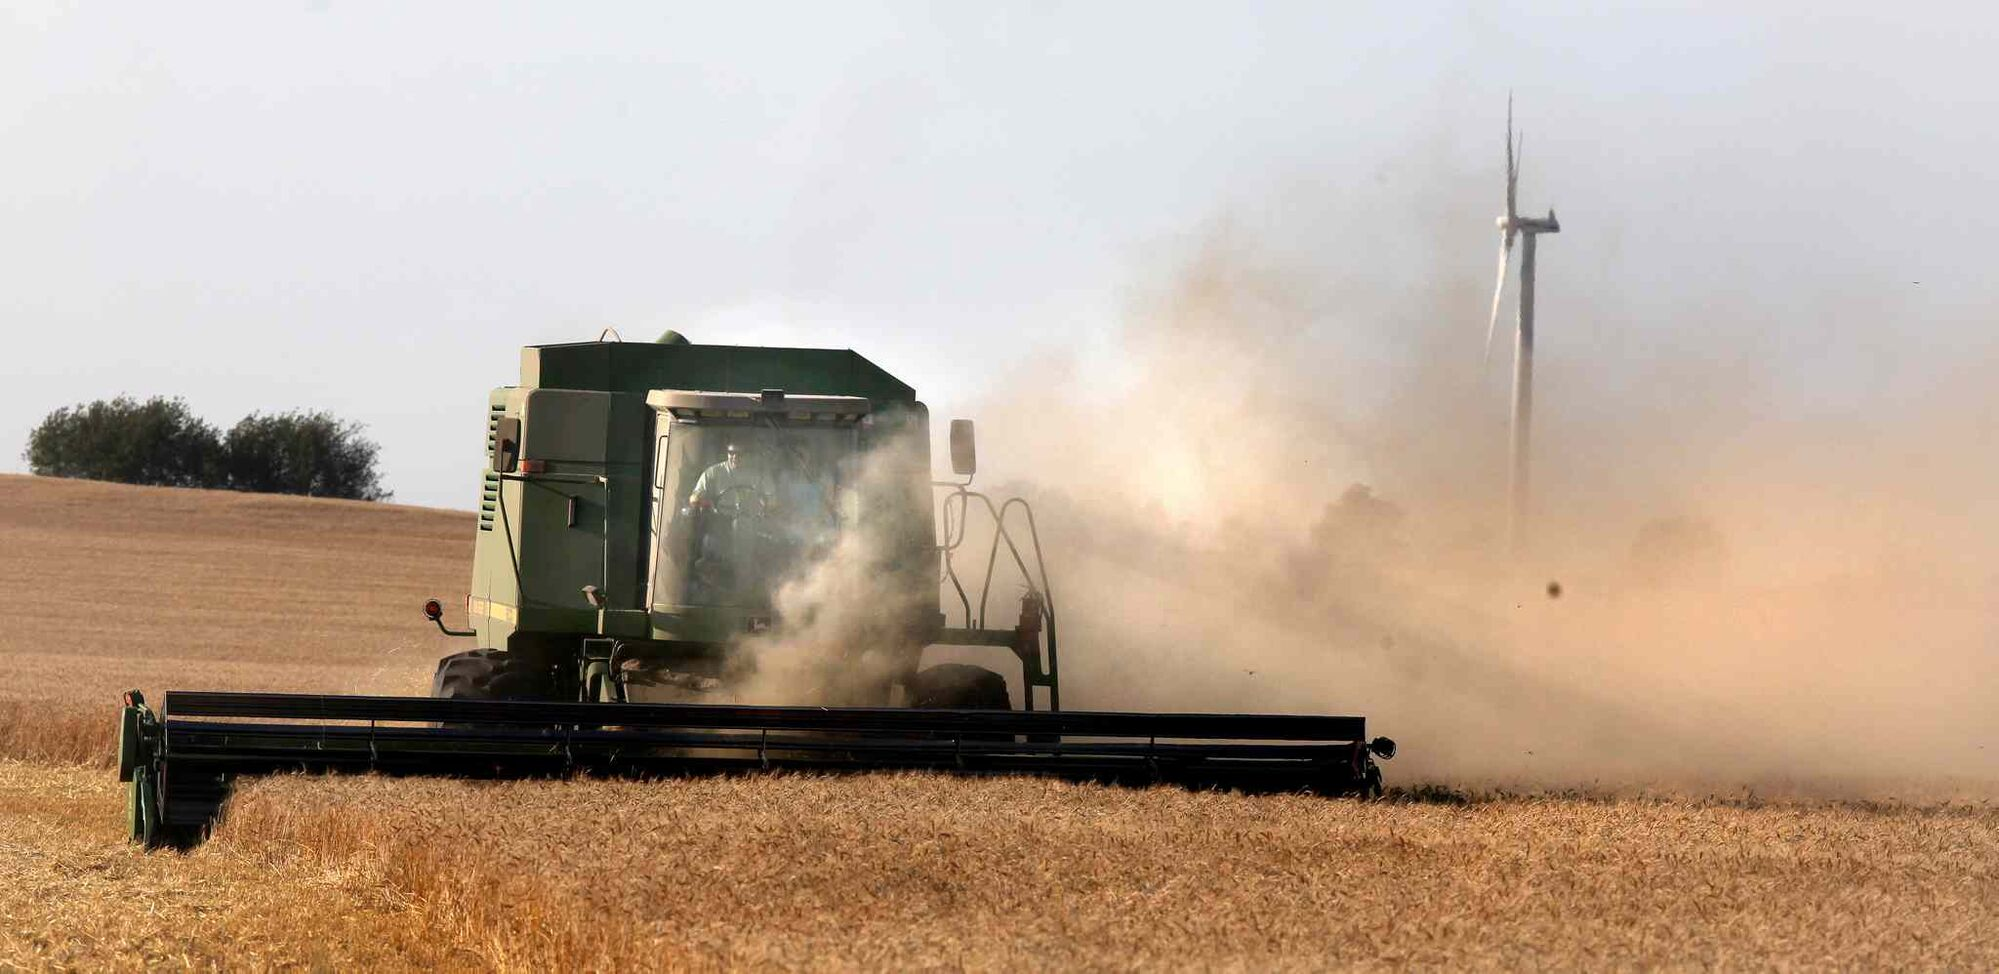 A farm couple near Altamont share the cab of a combine harvesting a field of wheat.